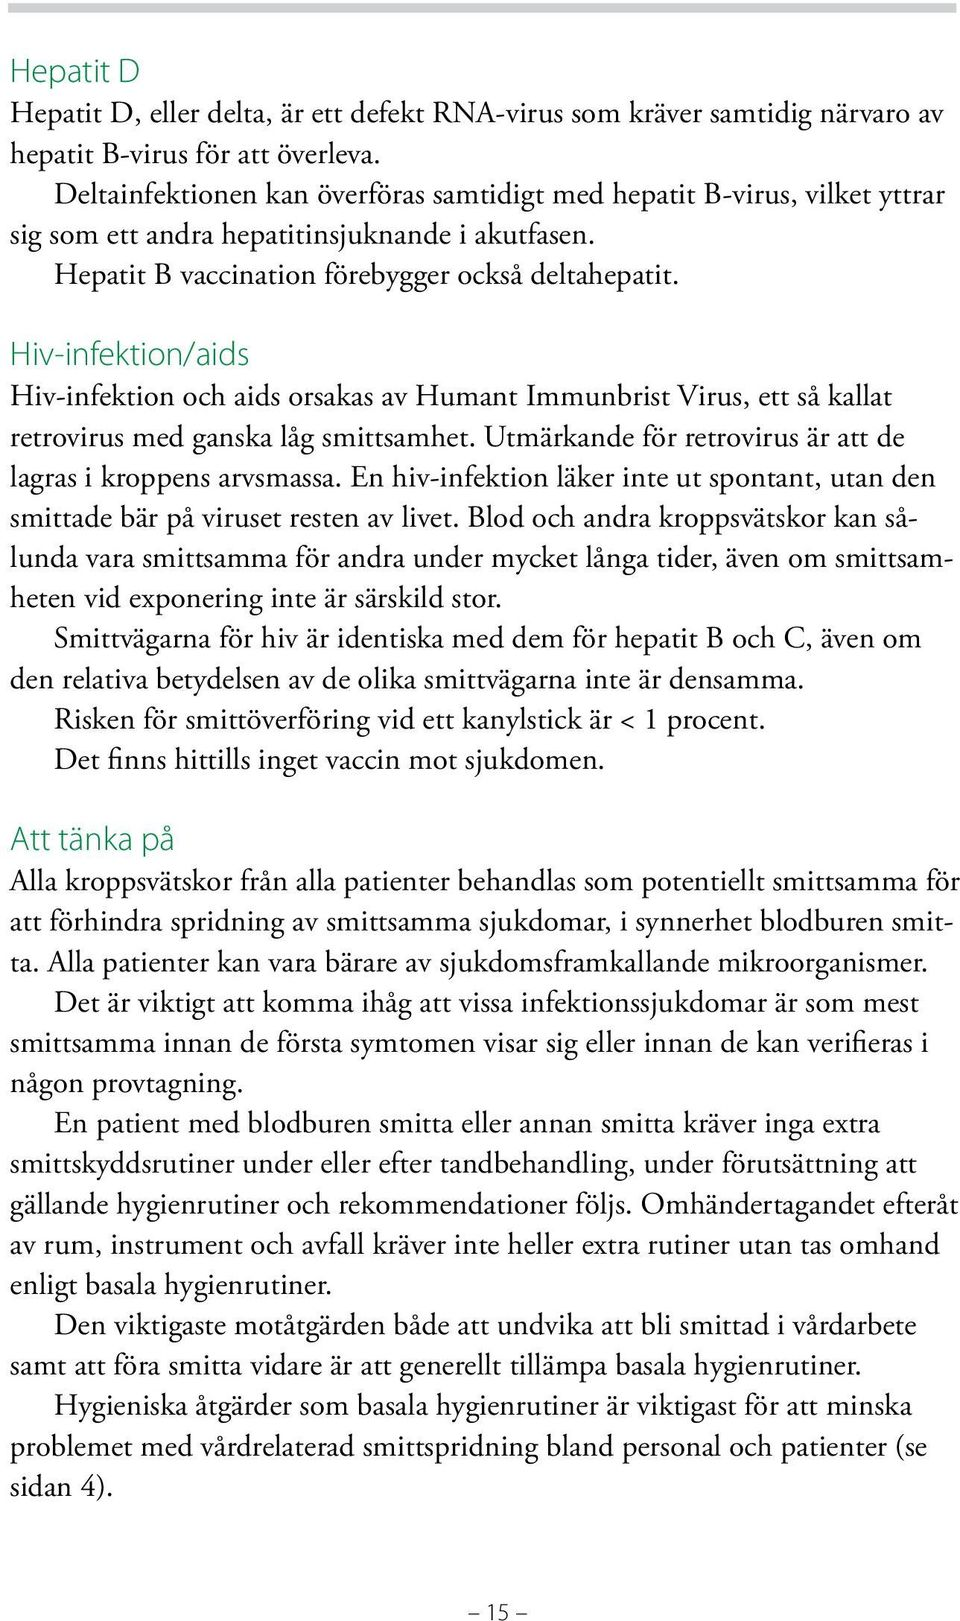 Hiv-infektion/aids Hiv-infektion och aids orsakas av Humant Immunbrist Virus, ett så kallat retrovirus med ganska låg smittsamhet. Utmärkande för retrovirus är att de lagras i kroppens arvsmassa.